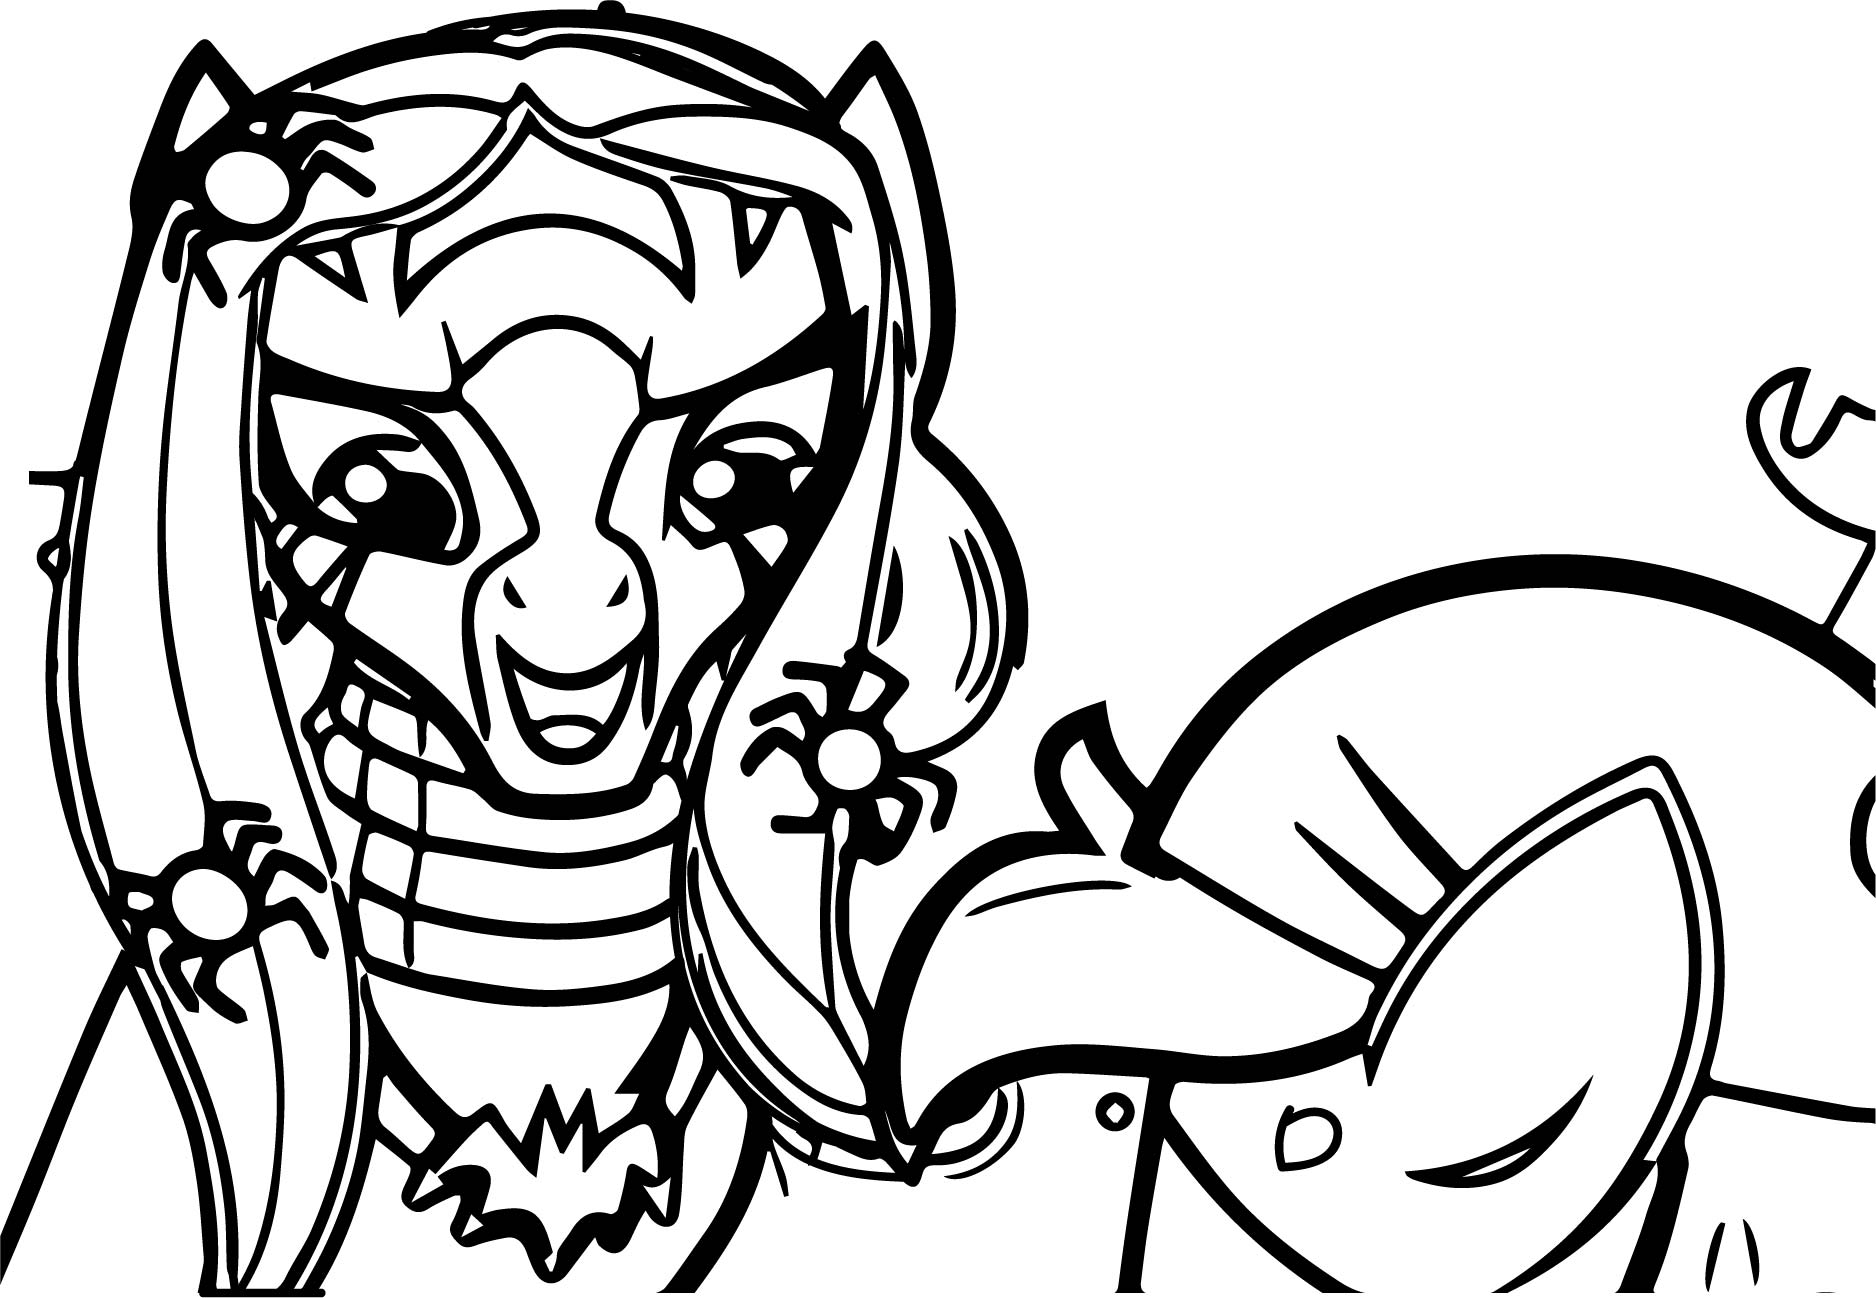 Zecora Might Let Us Live Coloring Page